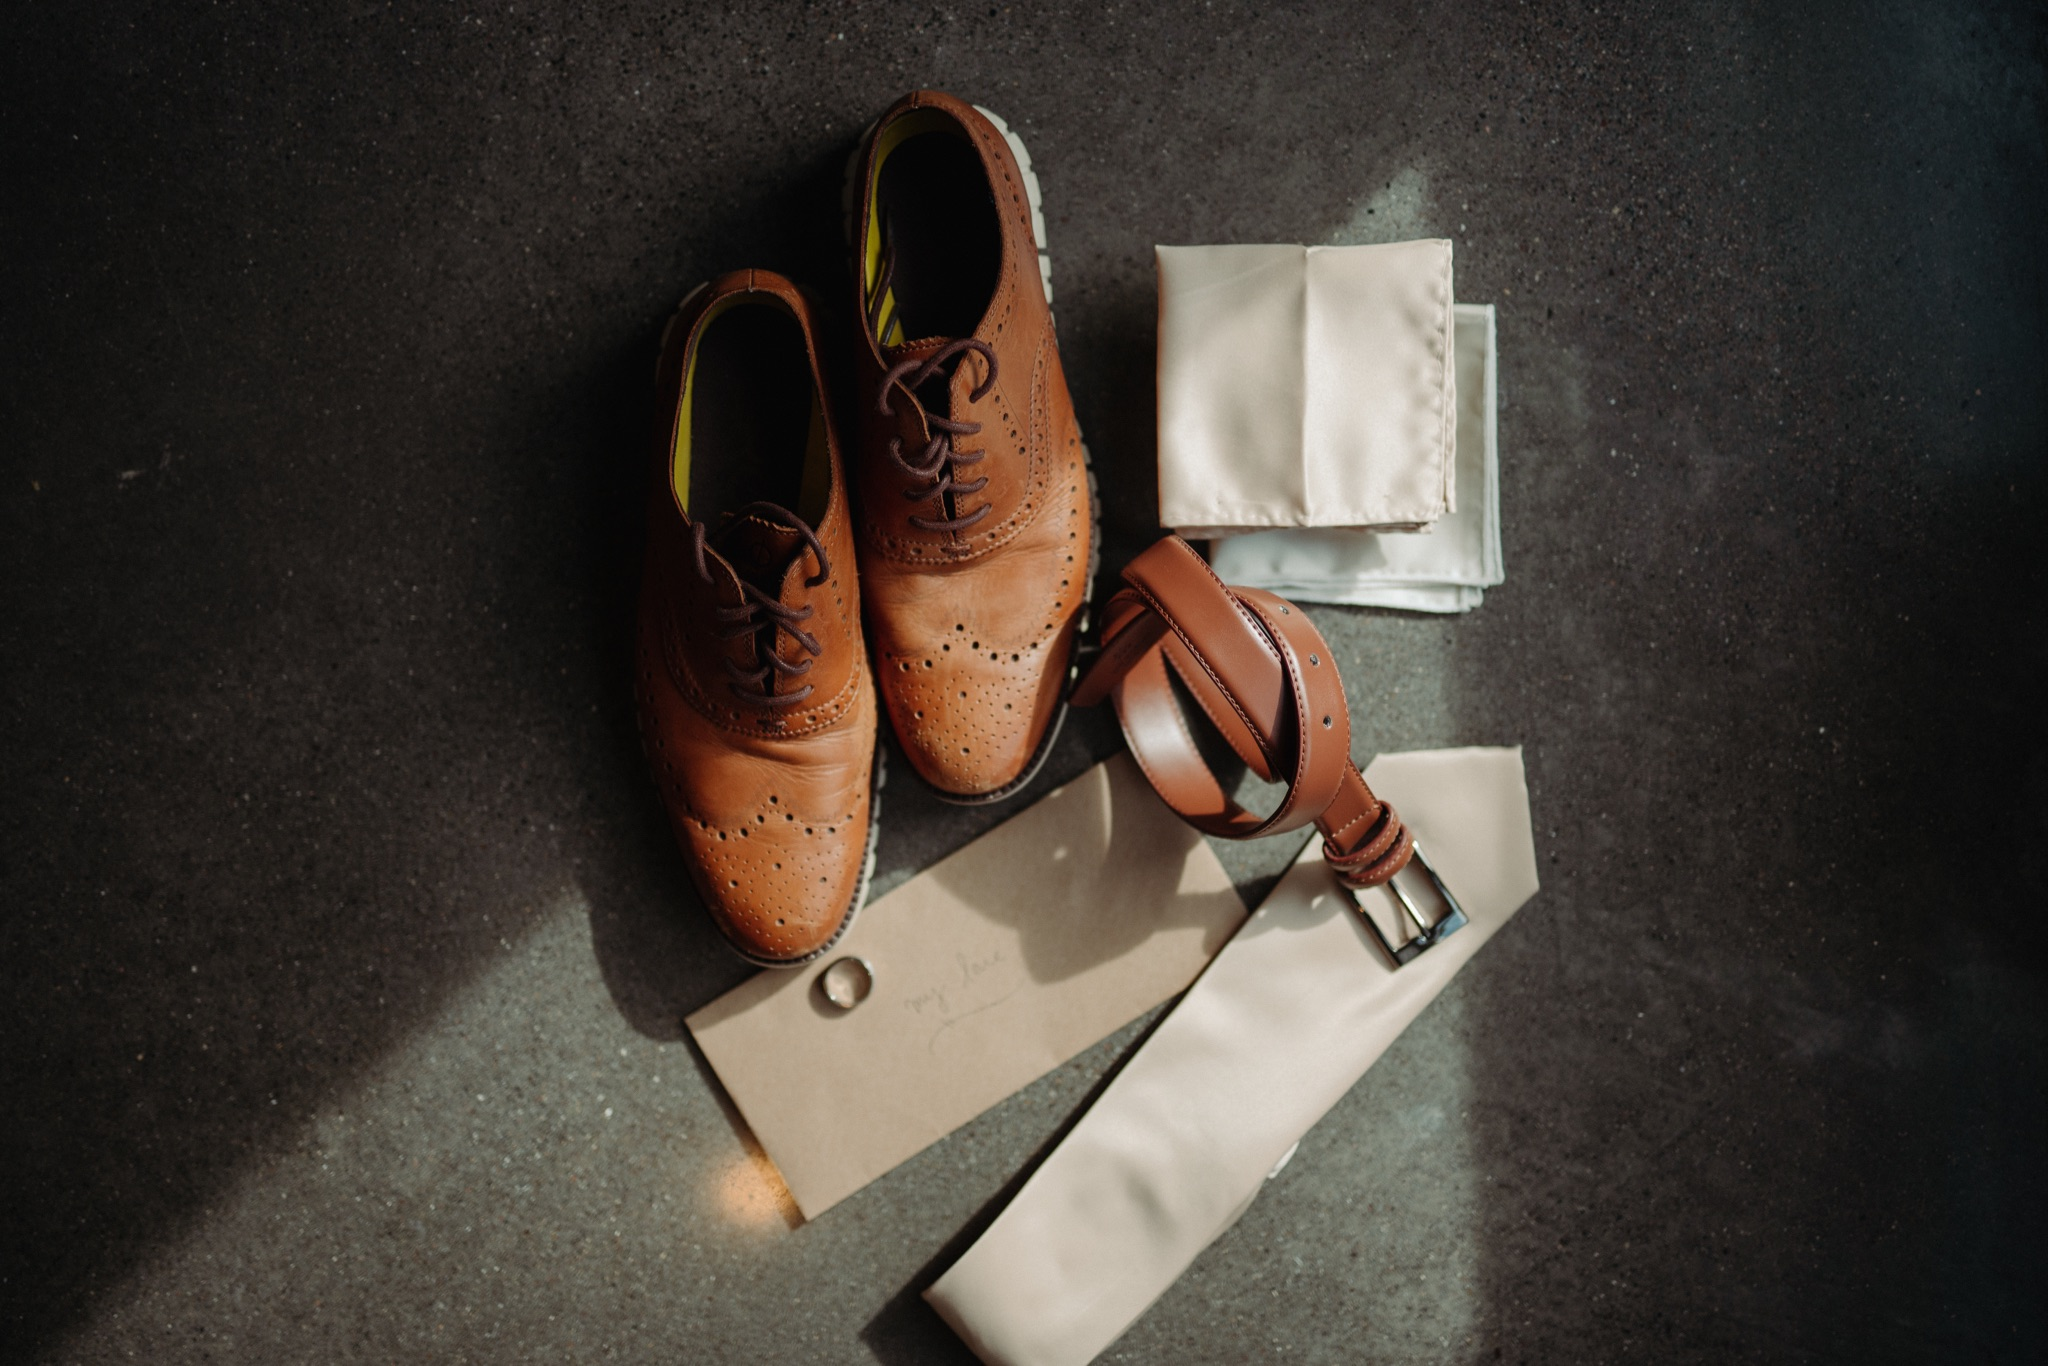 groom's shoes, ring, bent, handkerchief, tie, and letter